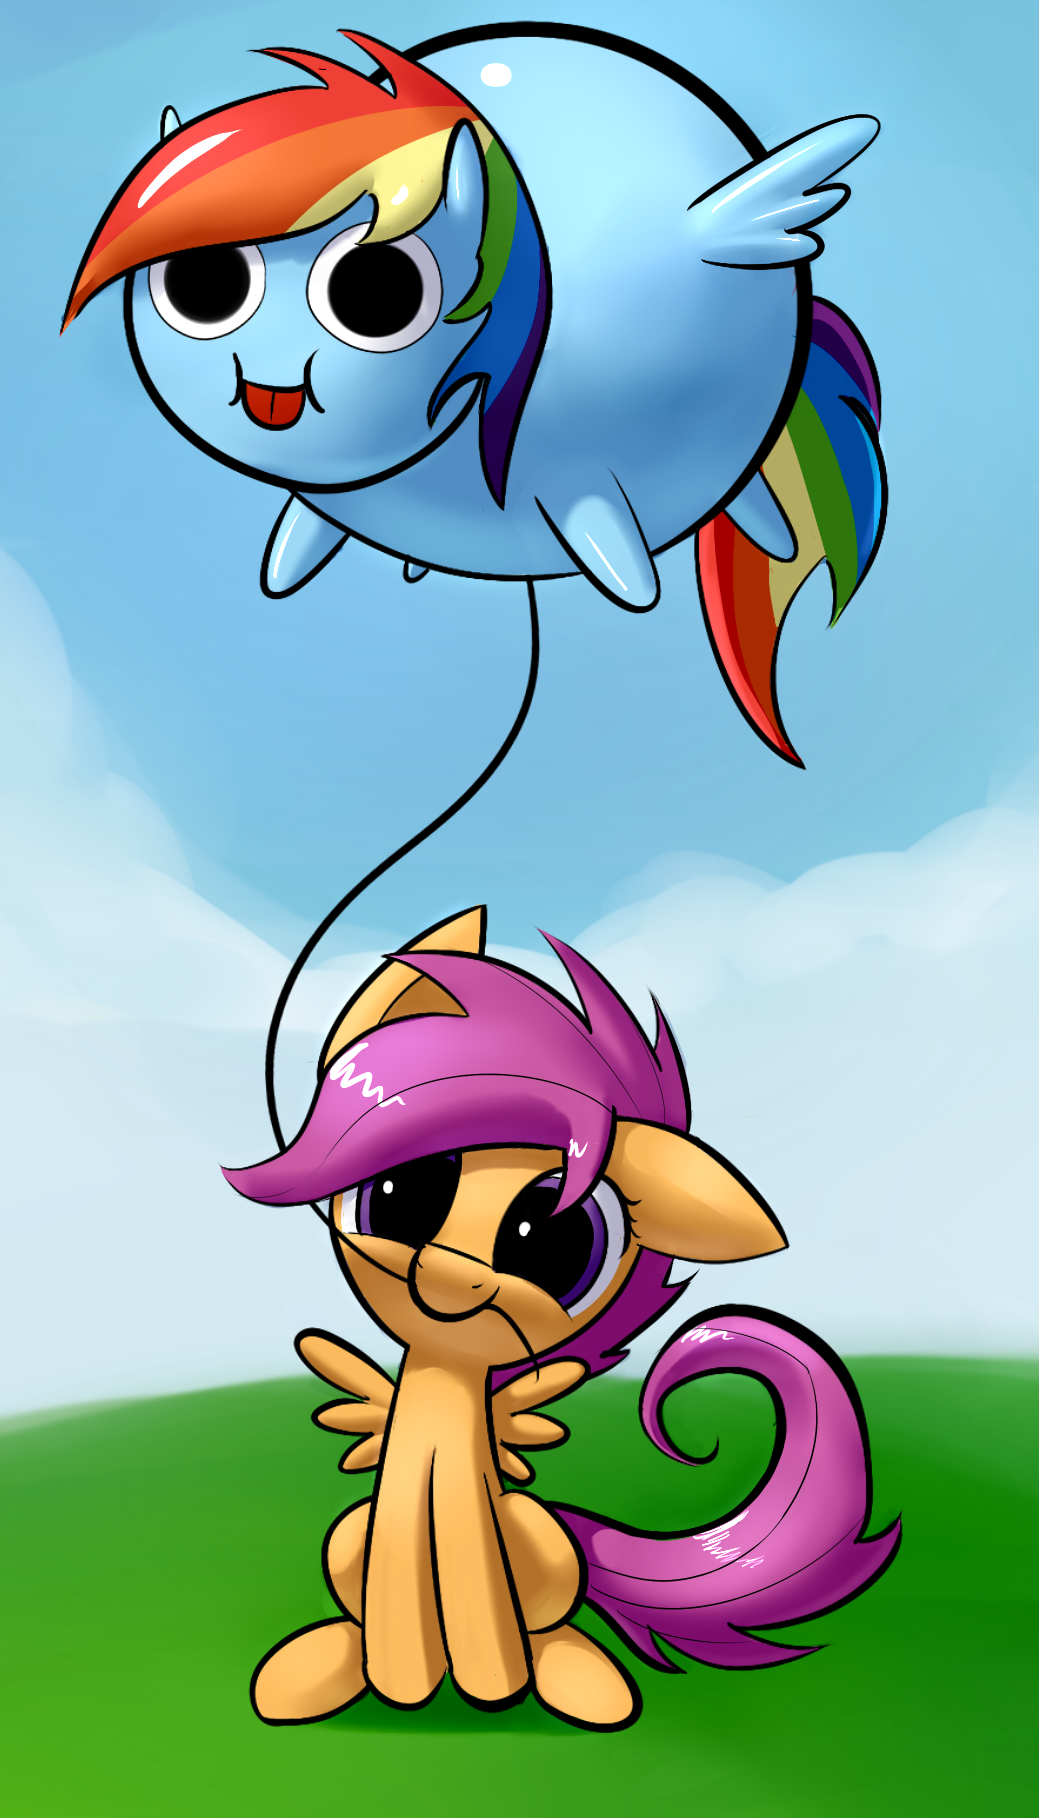 The Balloon by Underpable